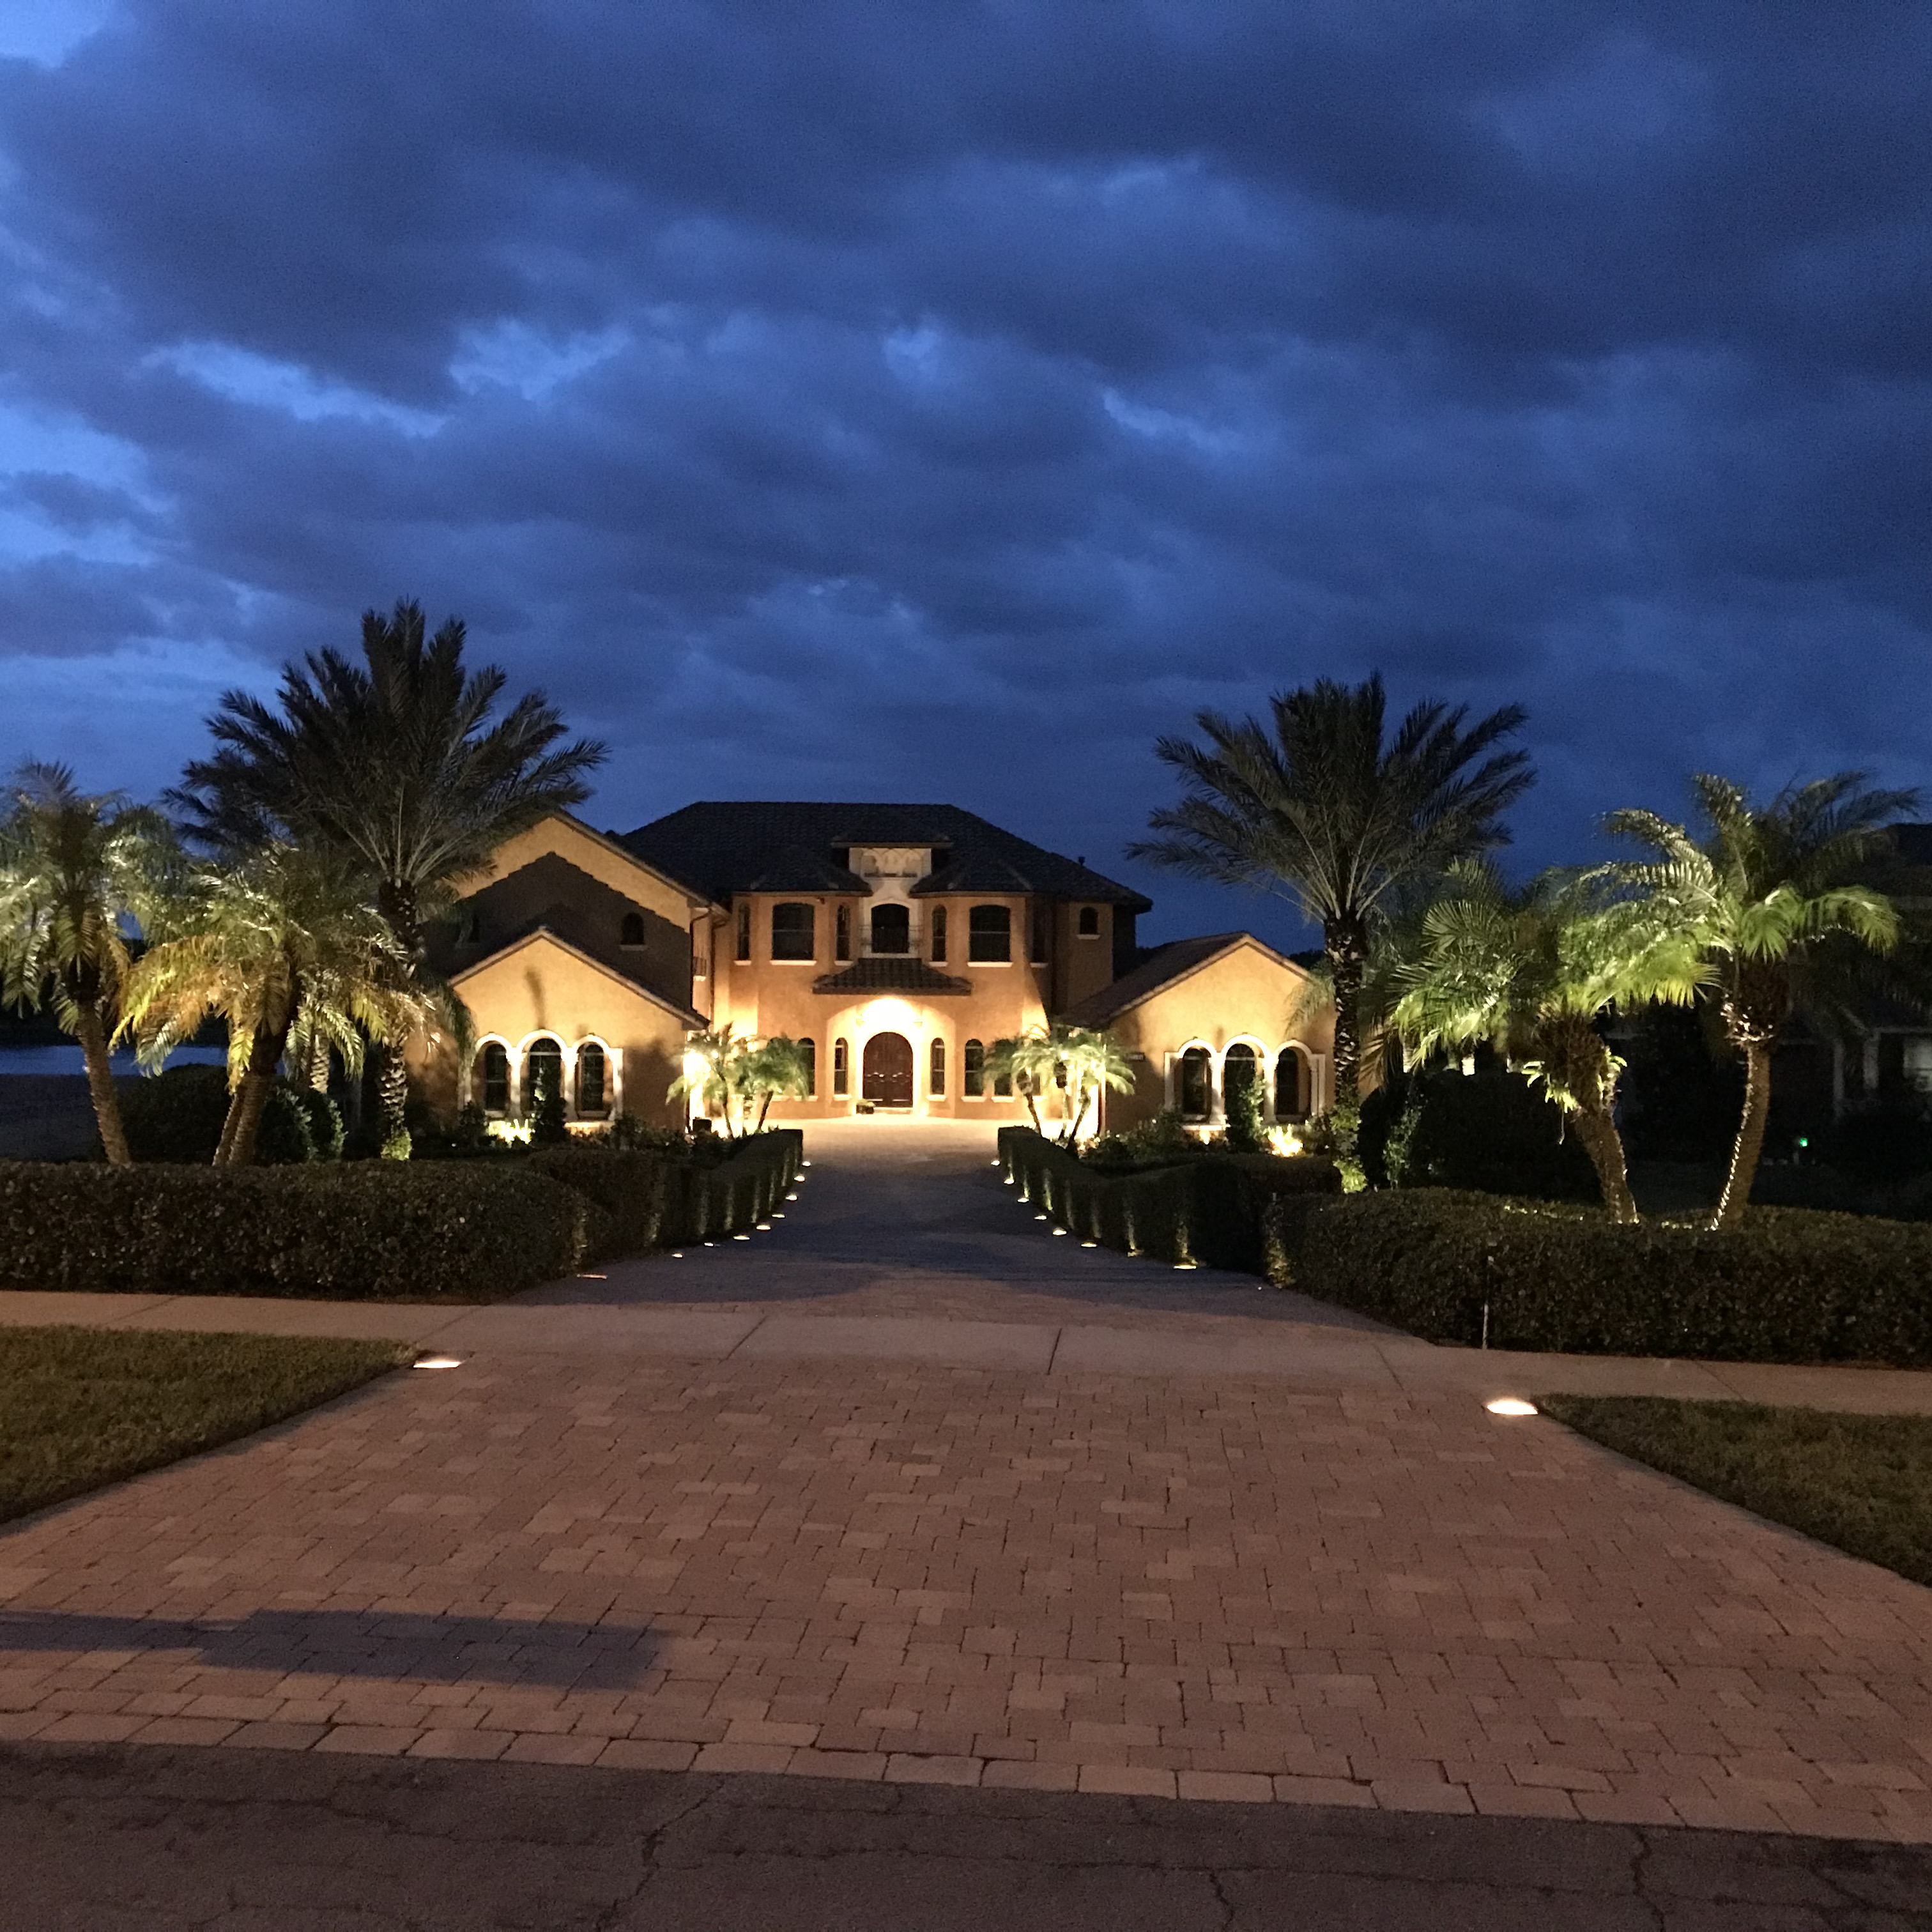 view of entire house and lighting lining the driveway